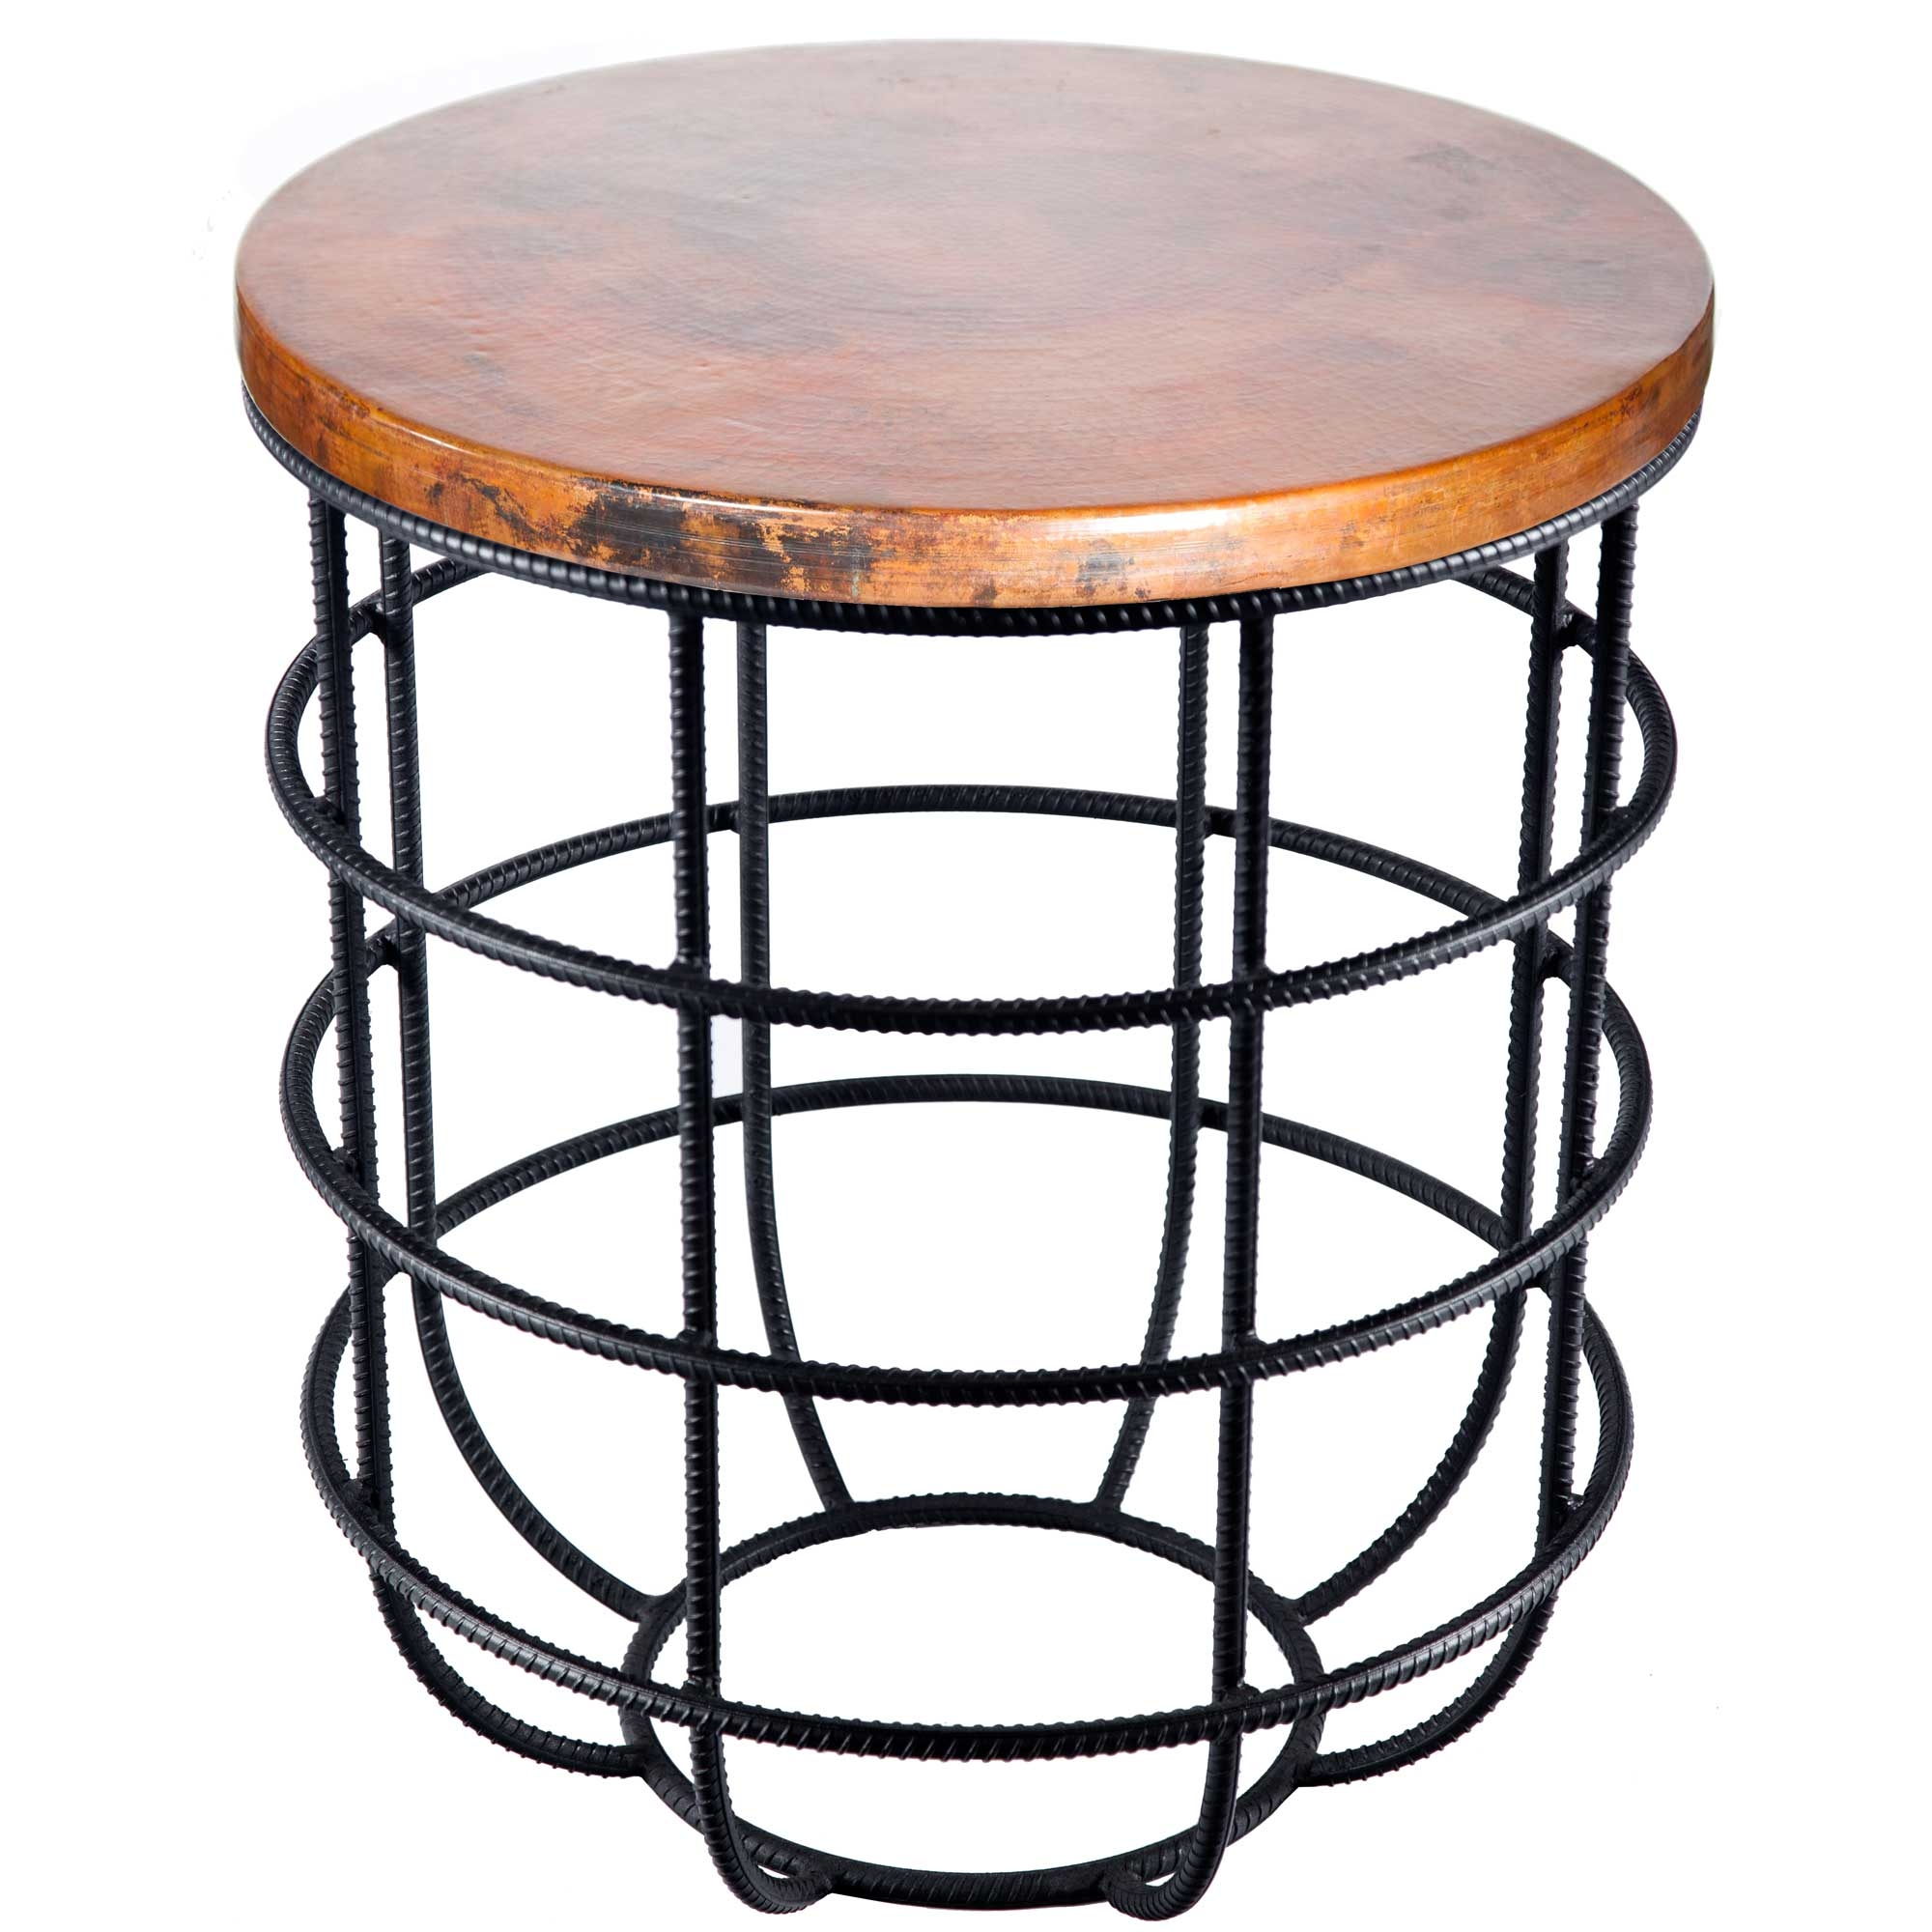 Side Table With Wrought Iron Base And Round Hammered Copper Larger Photo